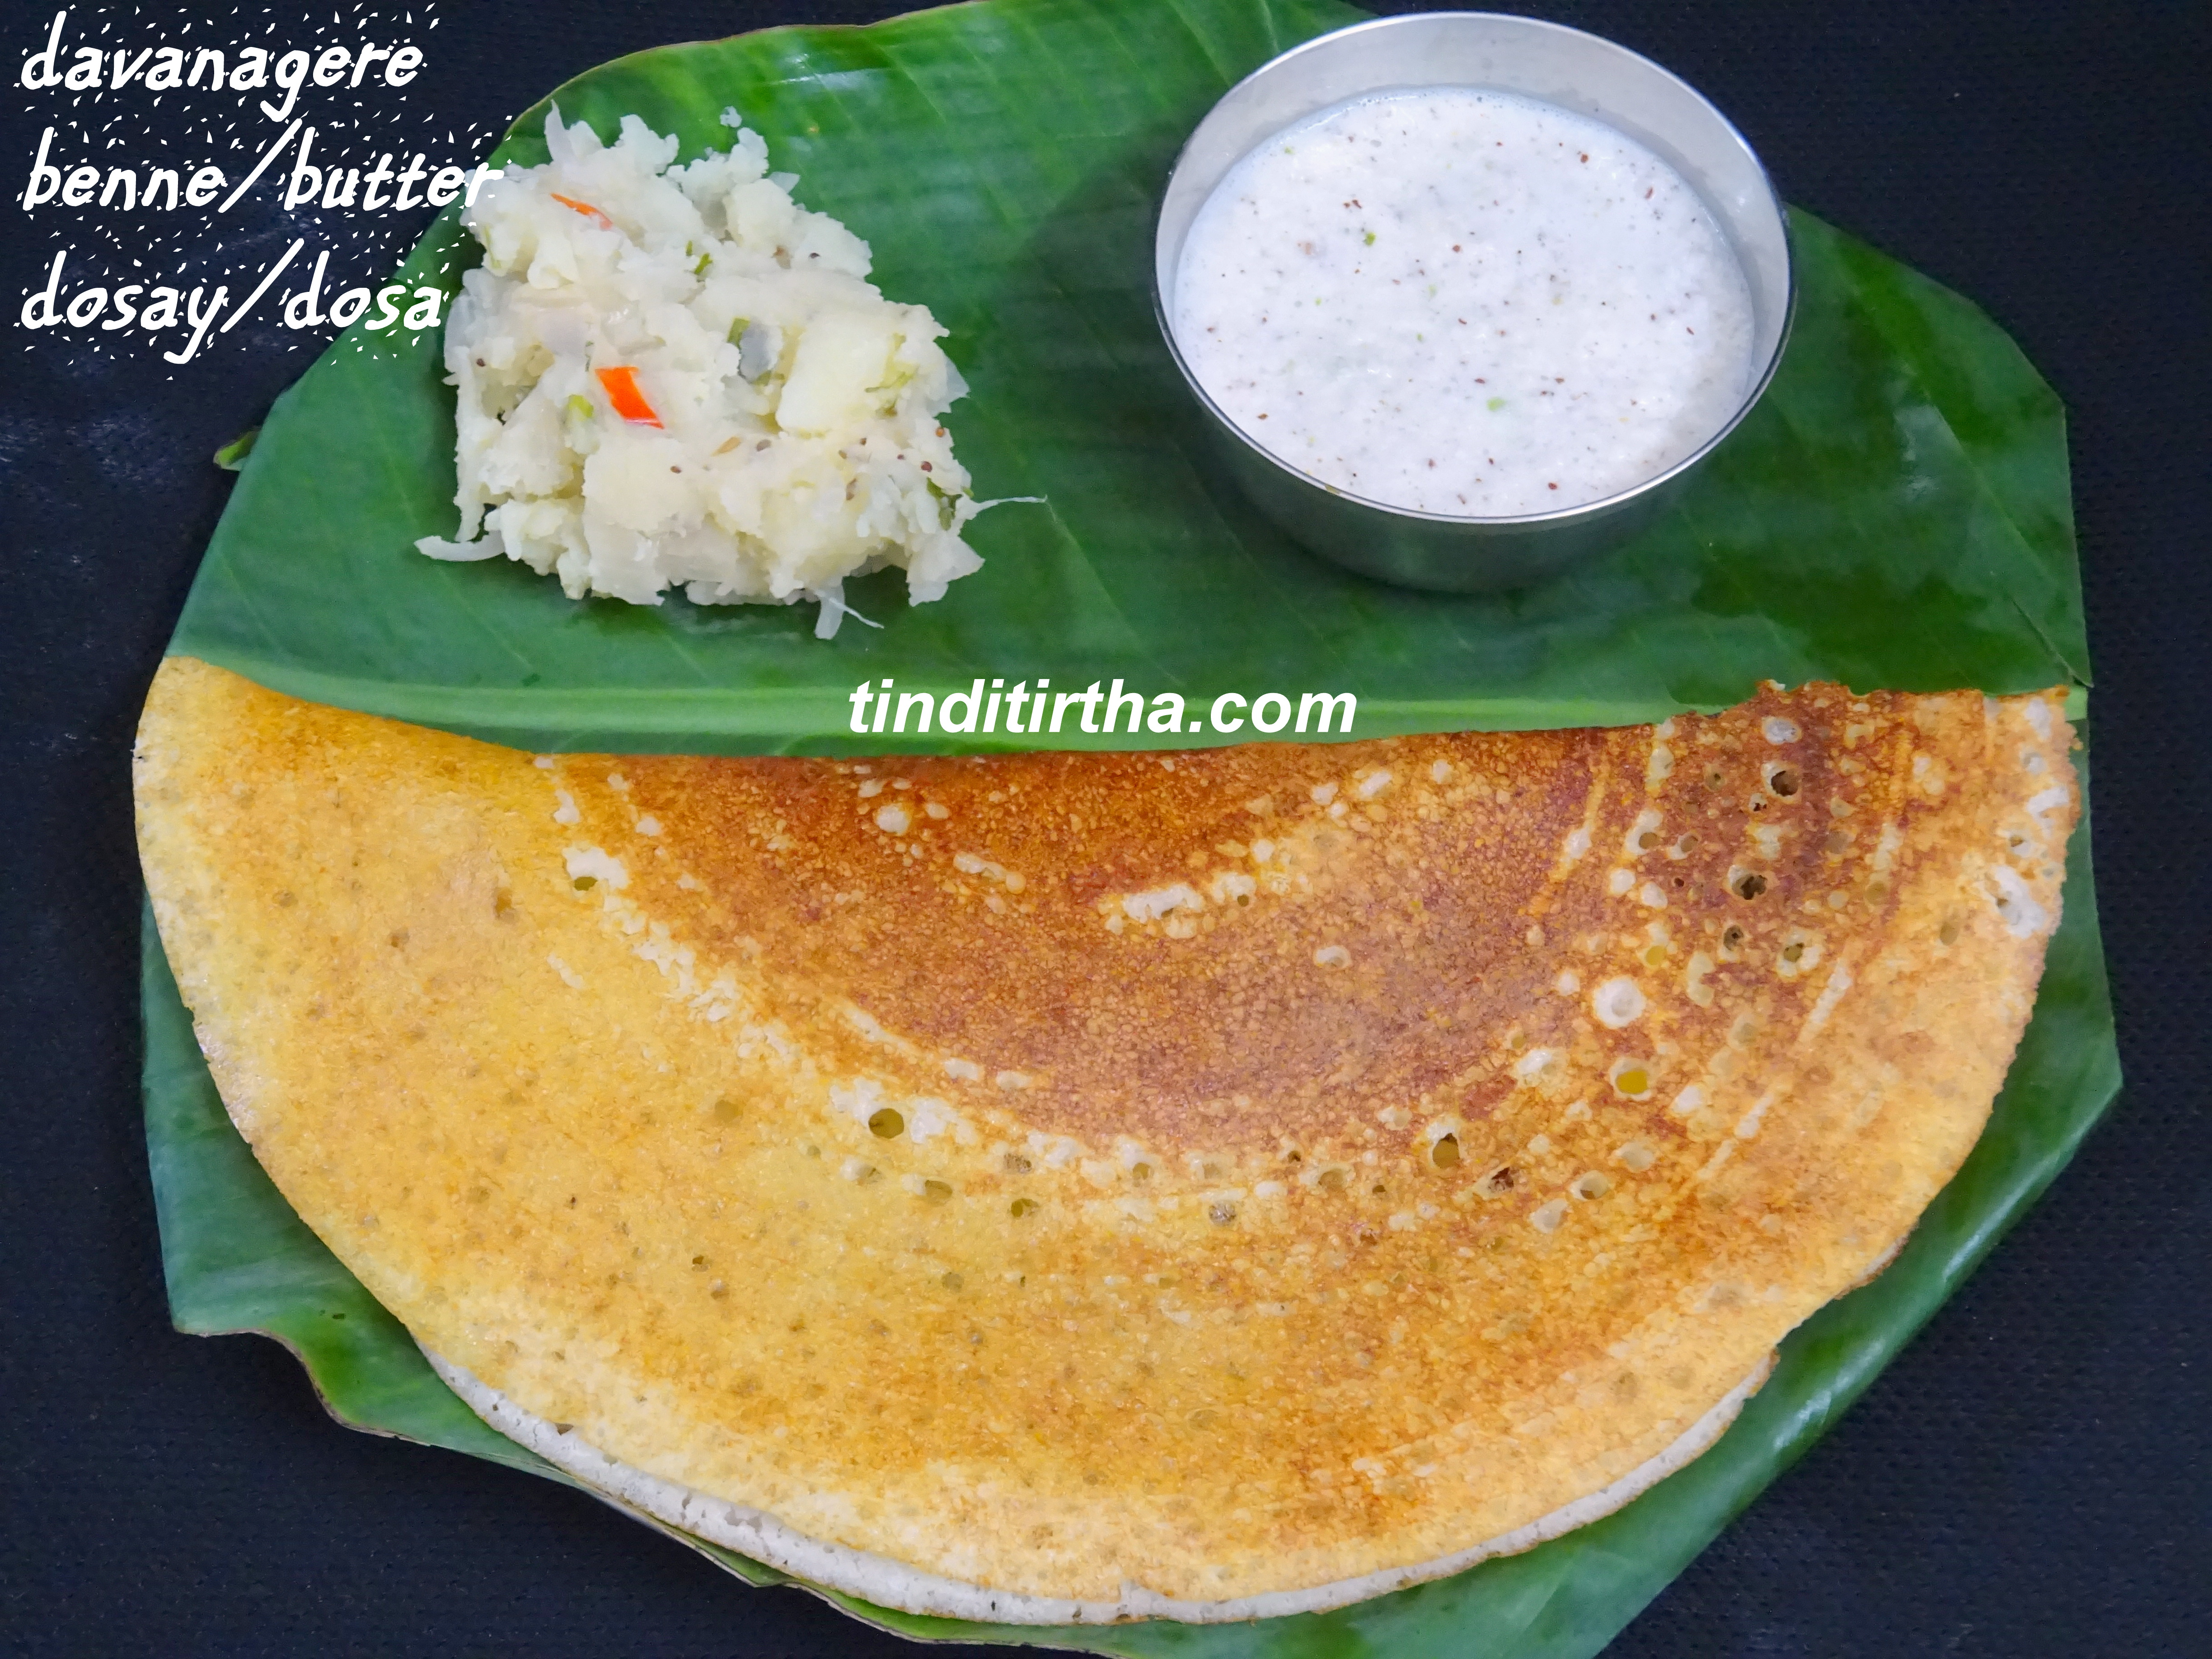 DAVANAGERE BENNE(BUTTER) DOSAY/DOSA